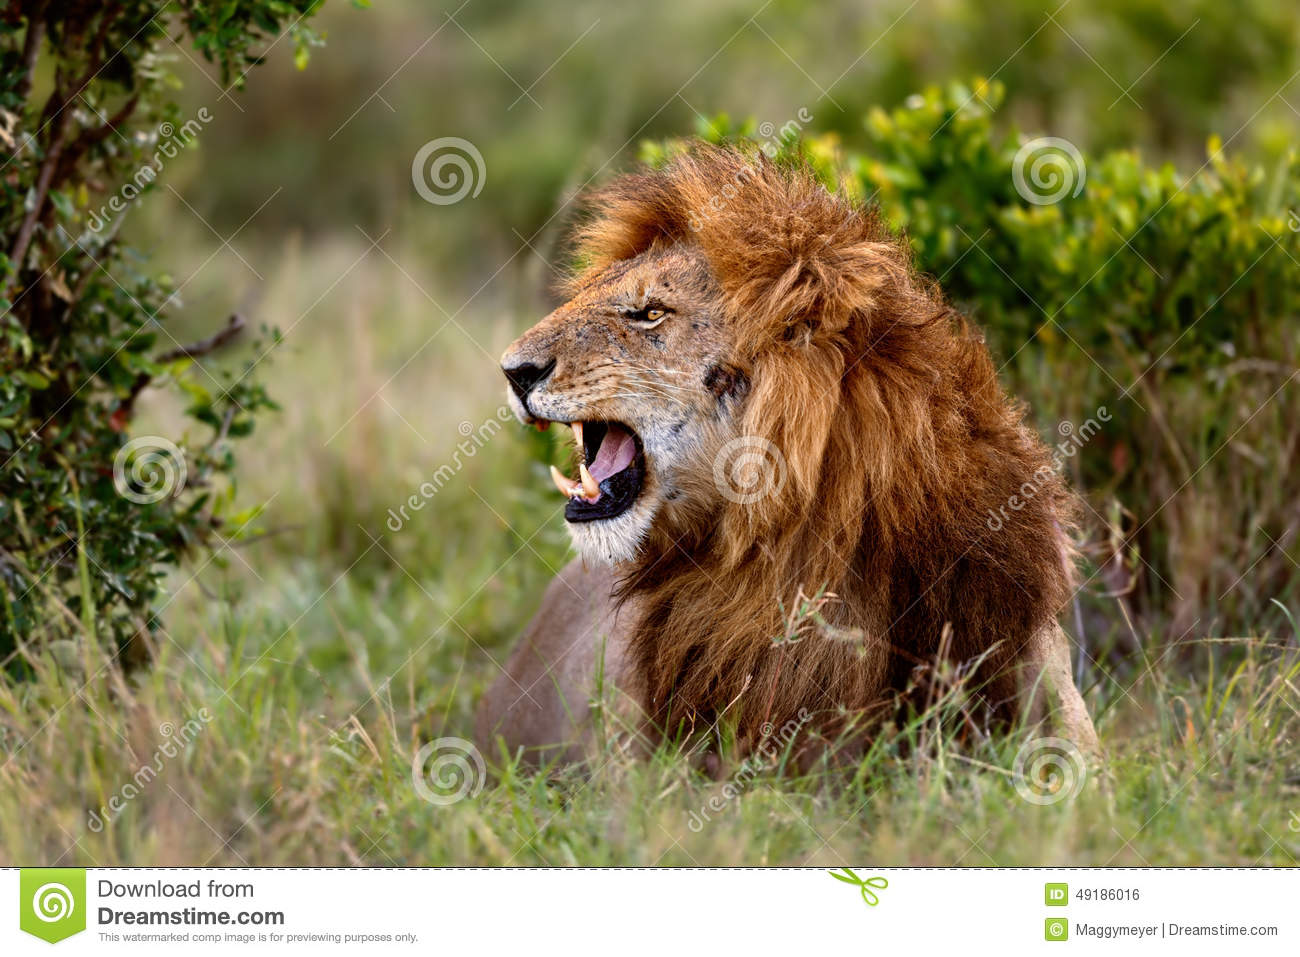 Hd wallpaper portrait - Blue Lion Roaring Pictures To Pin On Pinterest Pinsdaddy